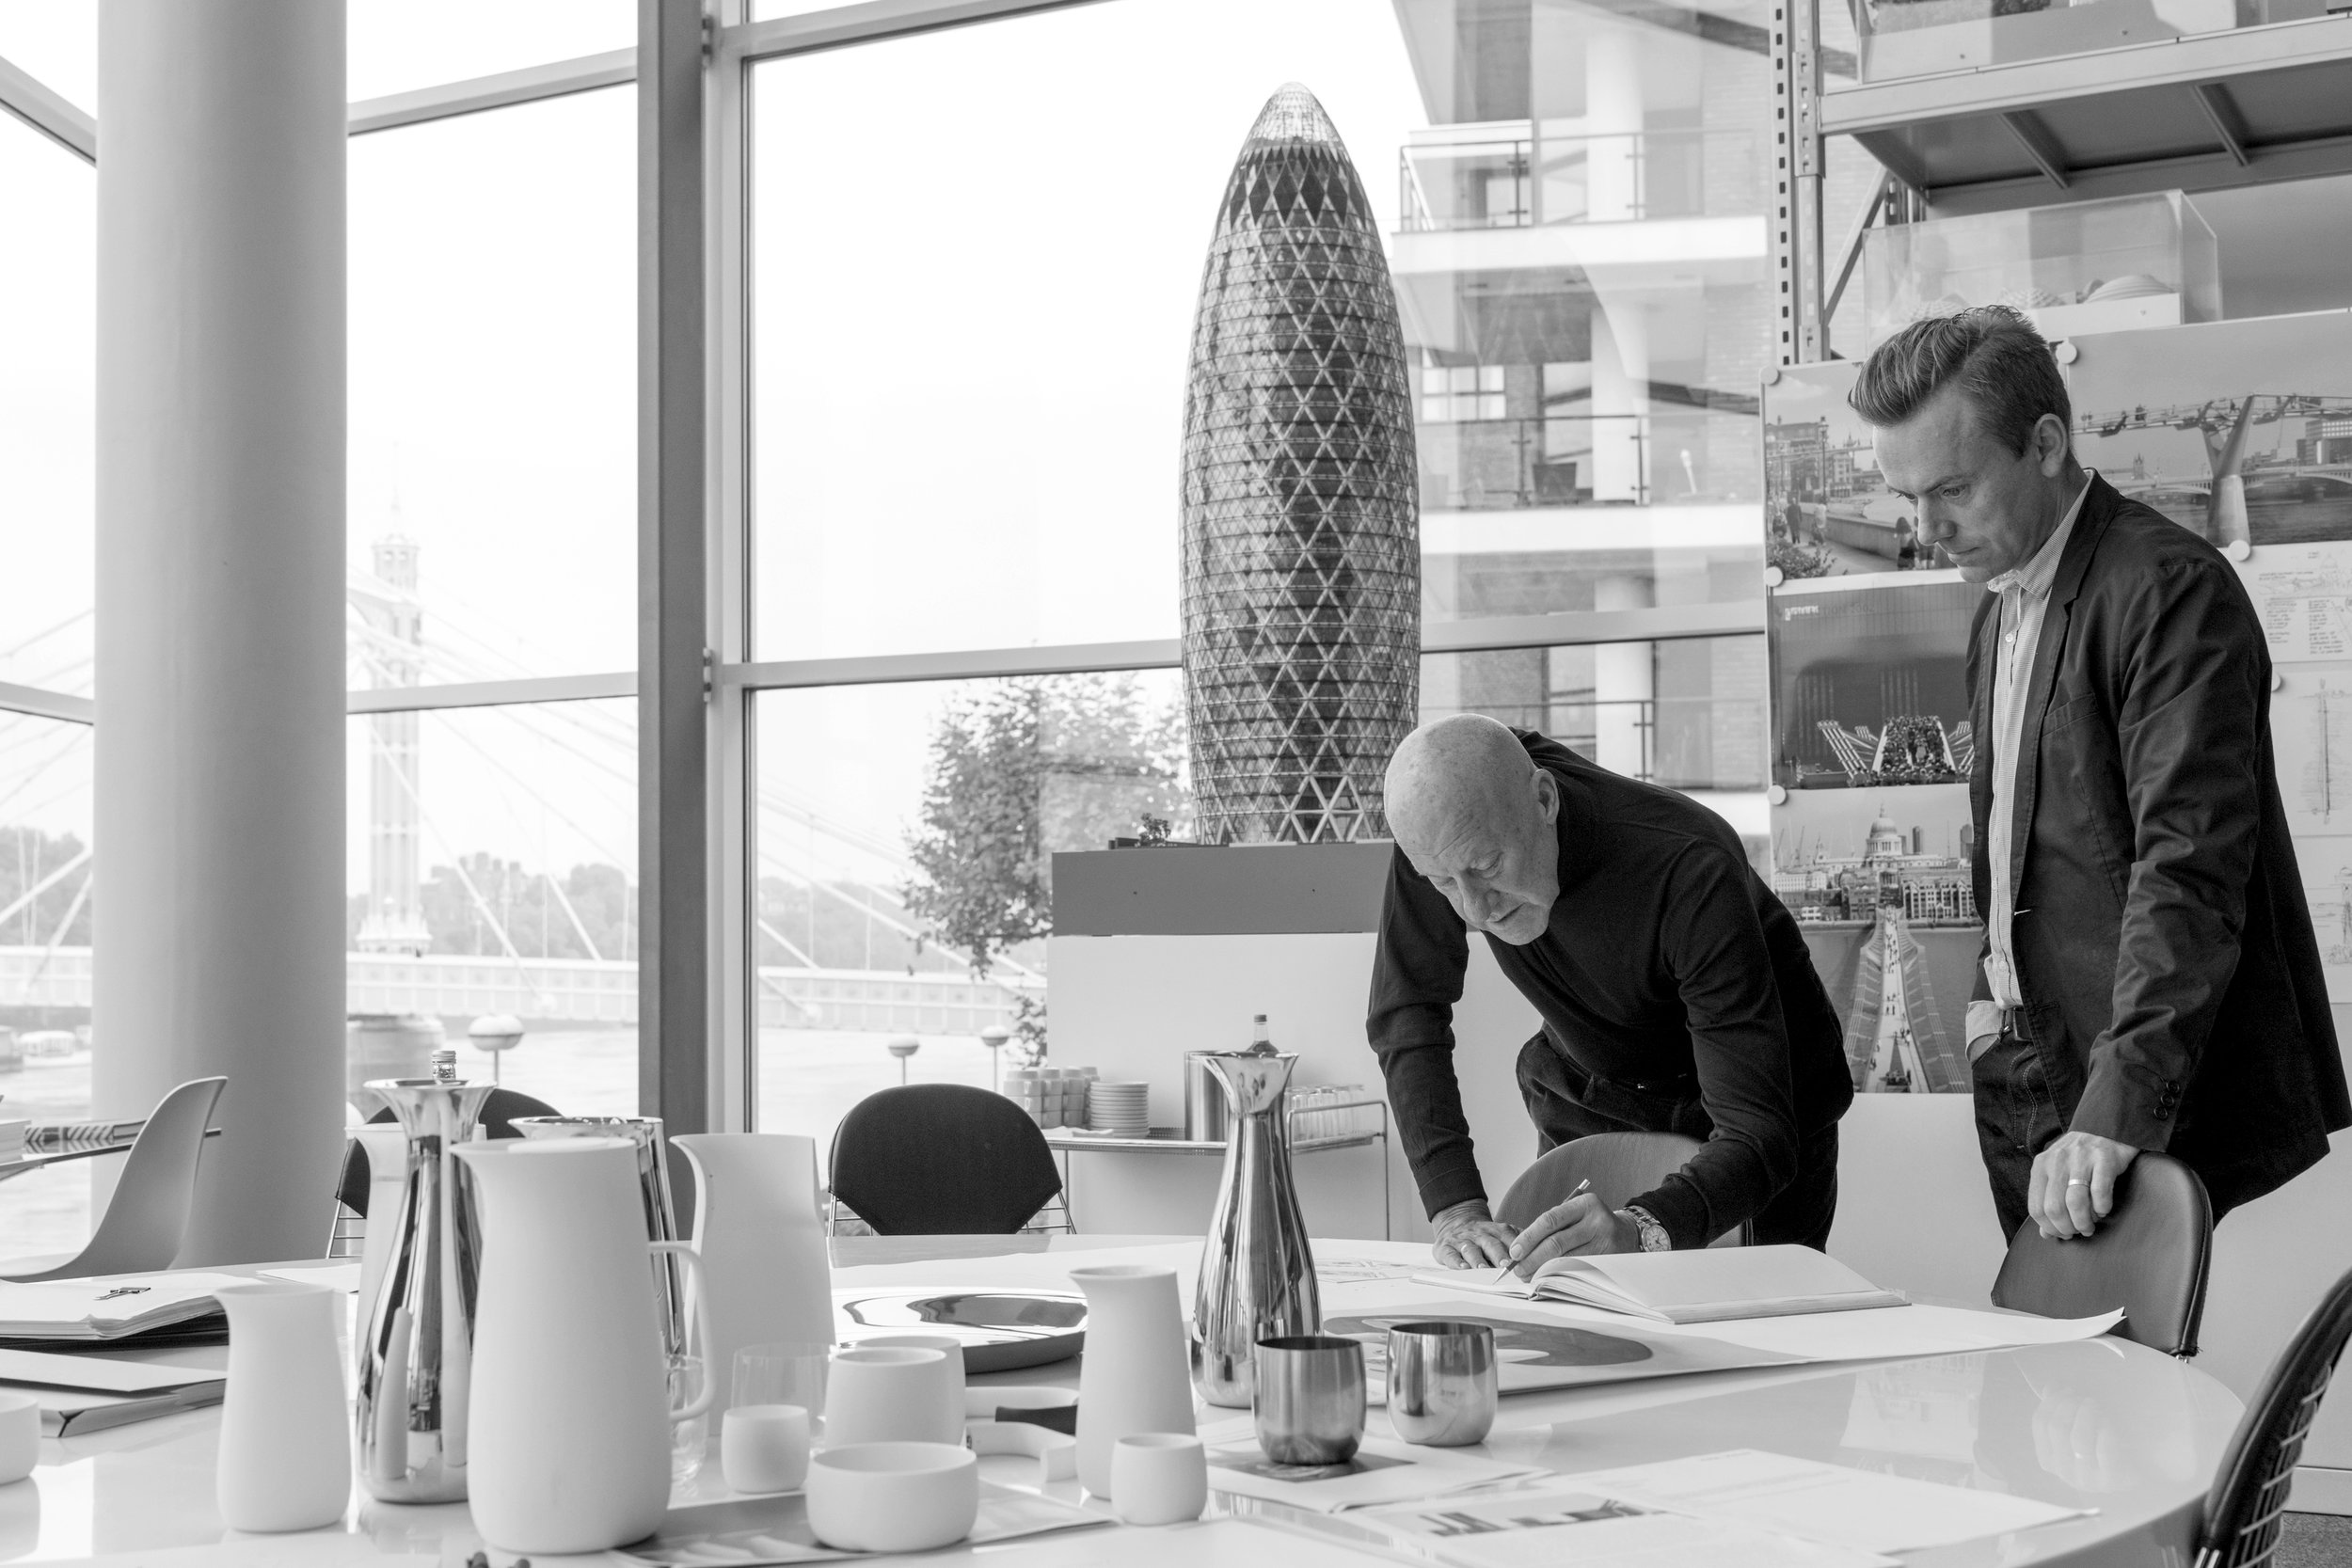 0361_FP637445_indesign_bw_Norman_Foster.jpg